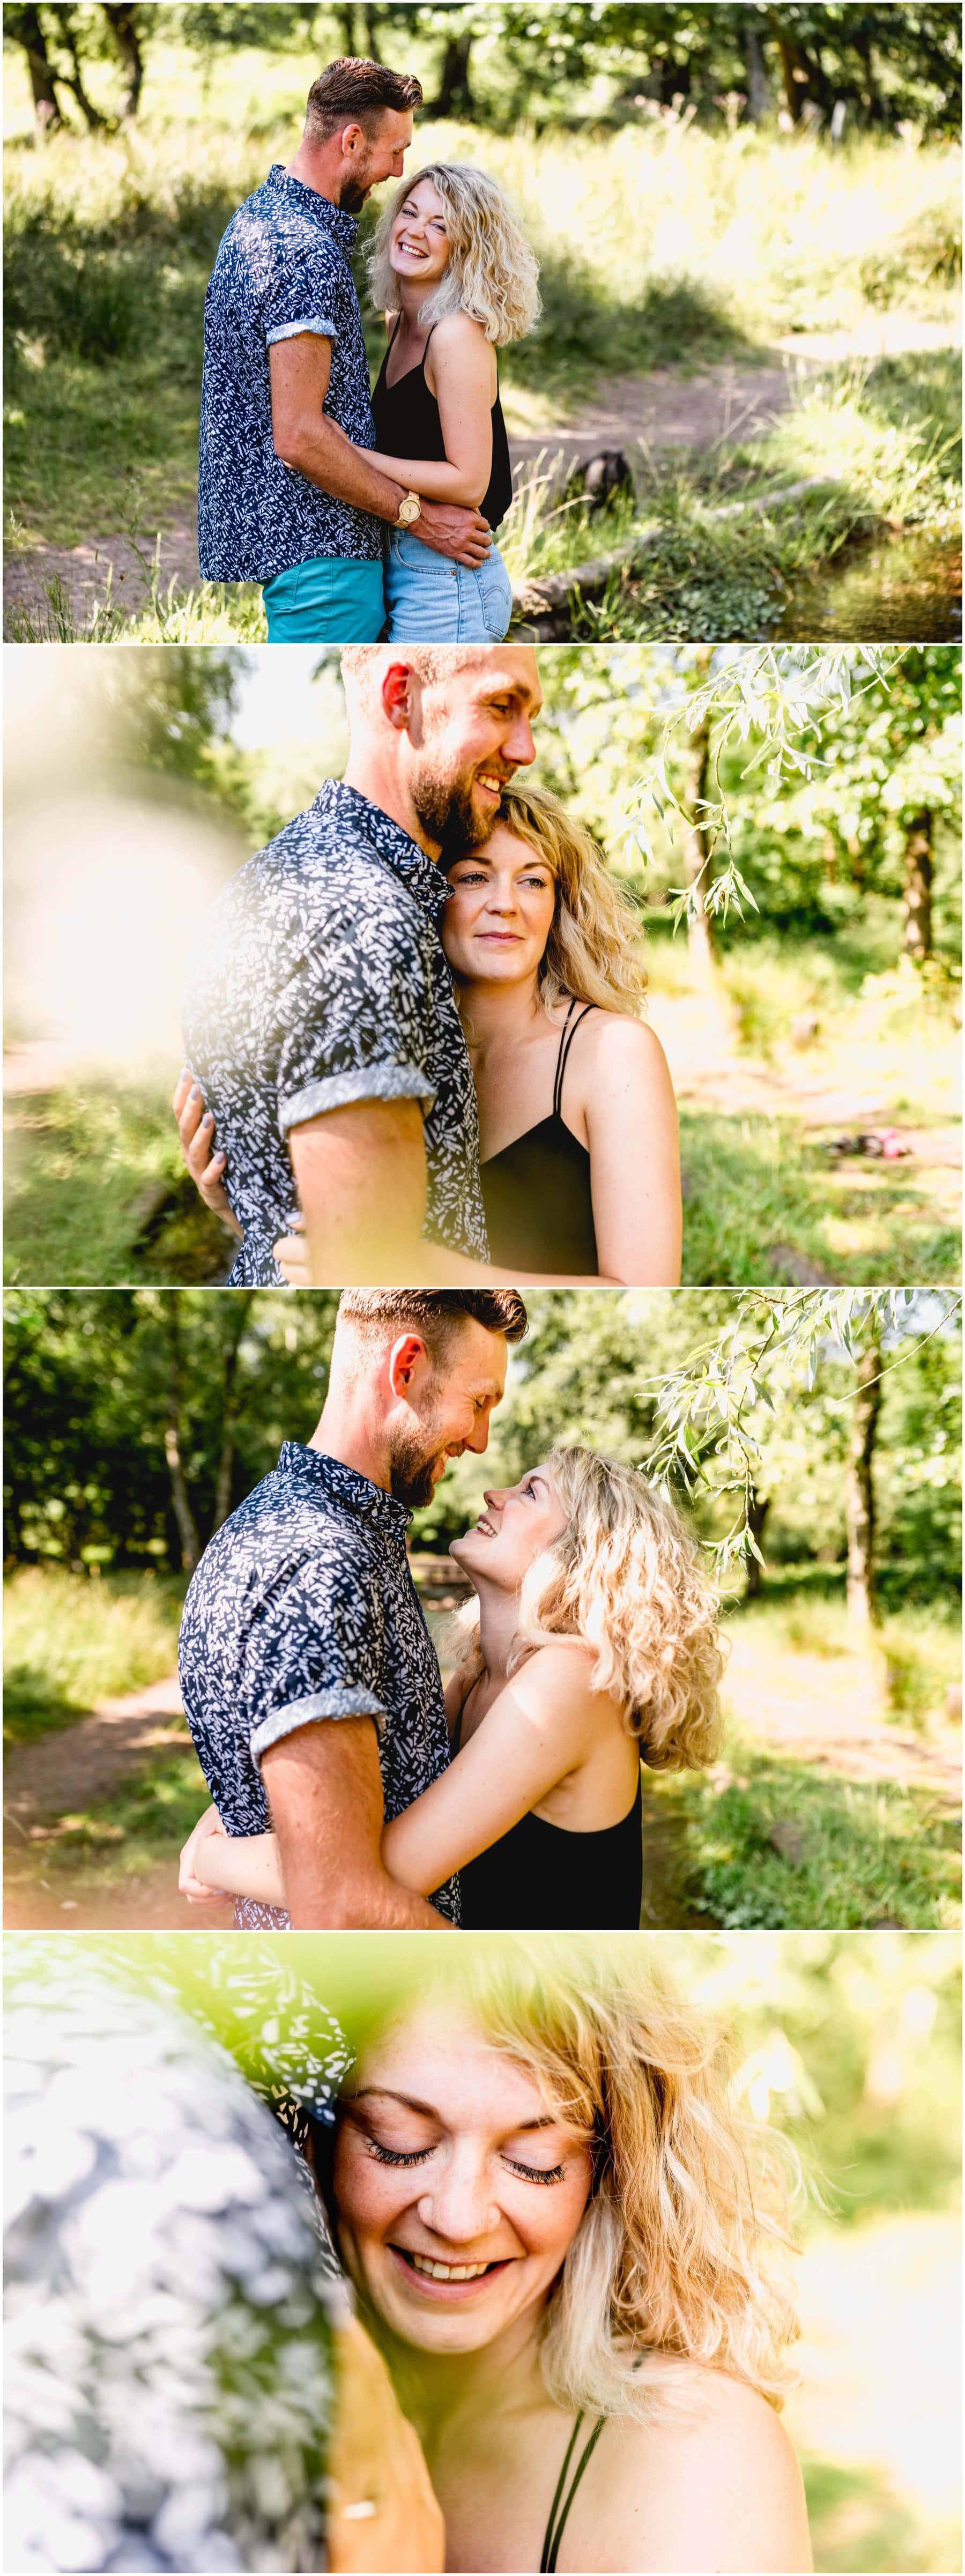 beautiful engagement shoot with couple standing in stream cuddling